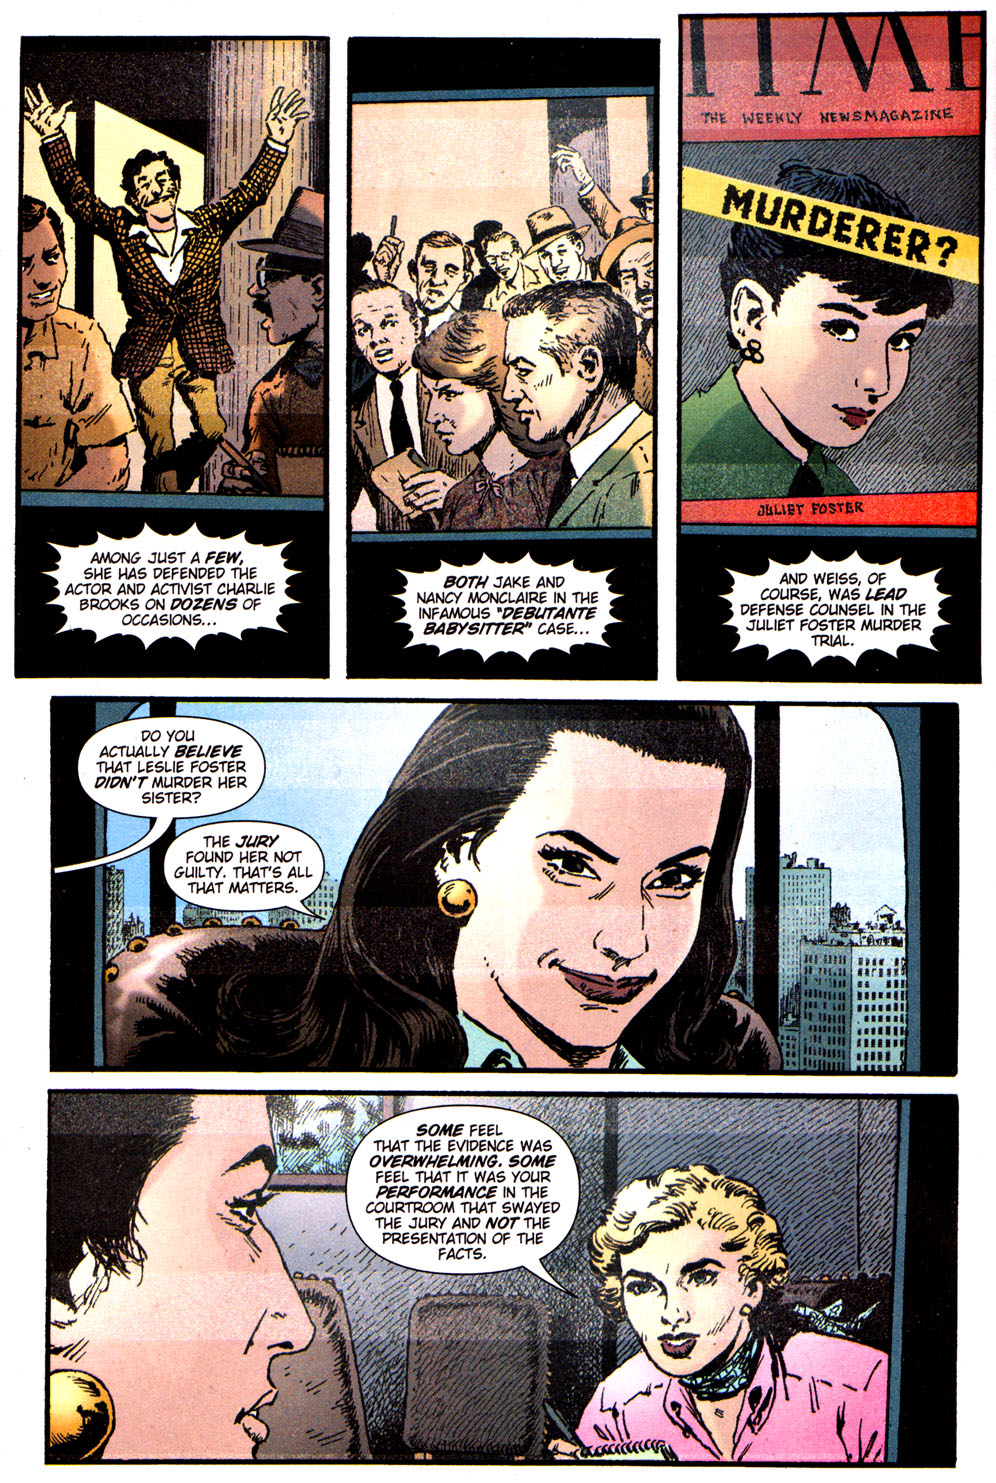 Read online Caper comic -  Issue #5 - 3